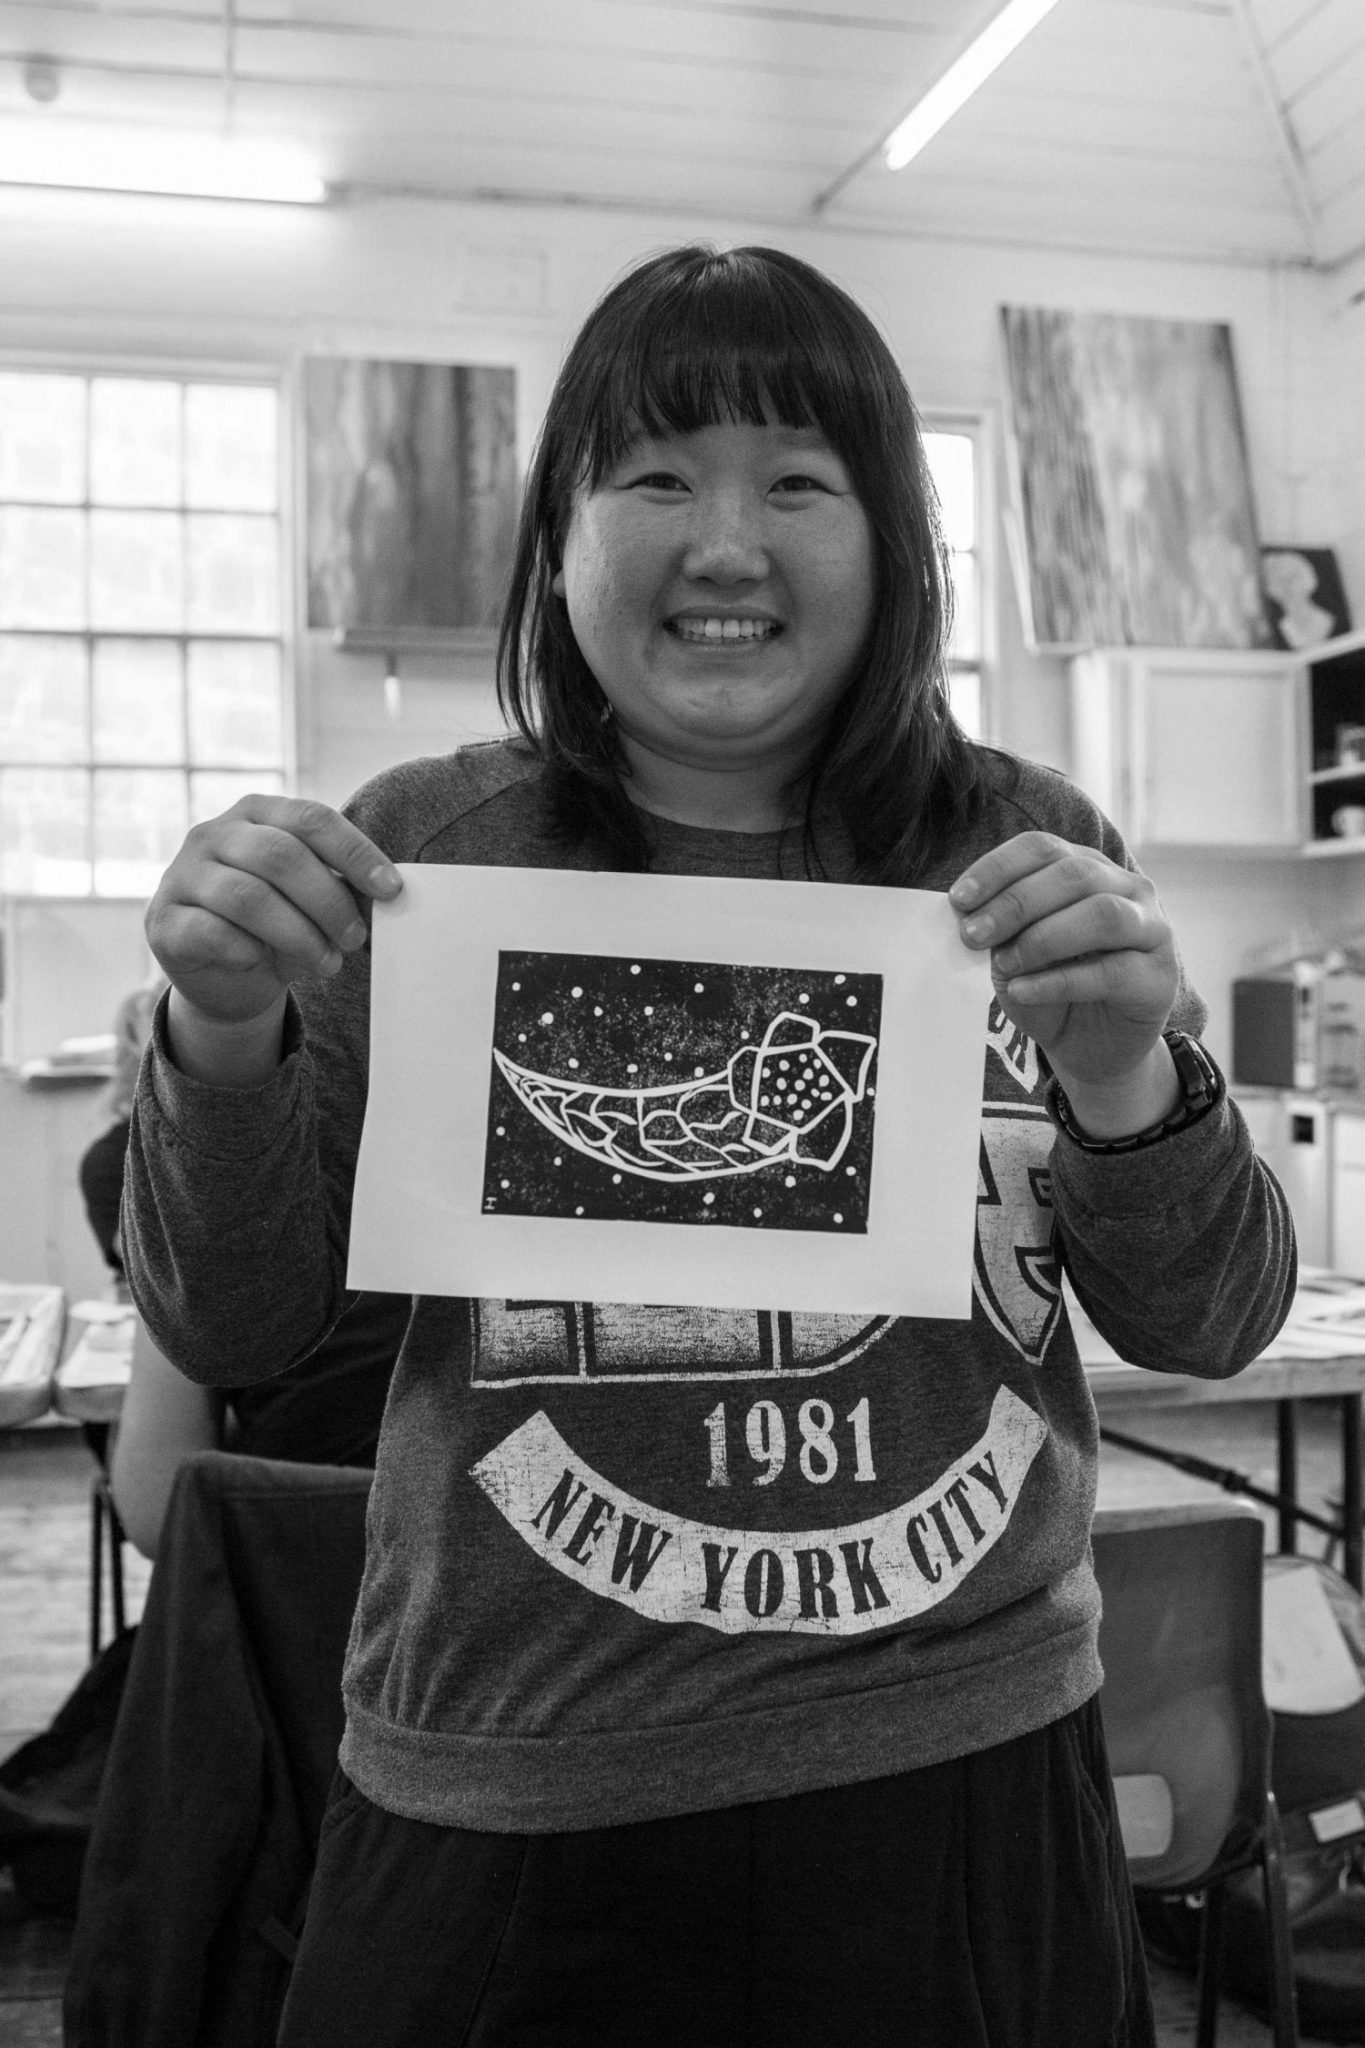 Open Canvas artist Irene Hwang at a linocut workshop